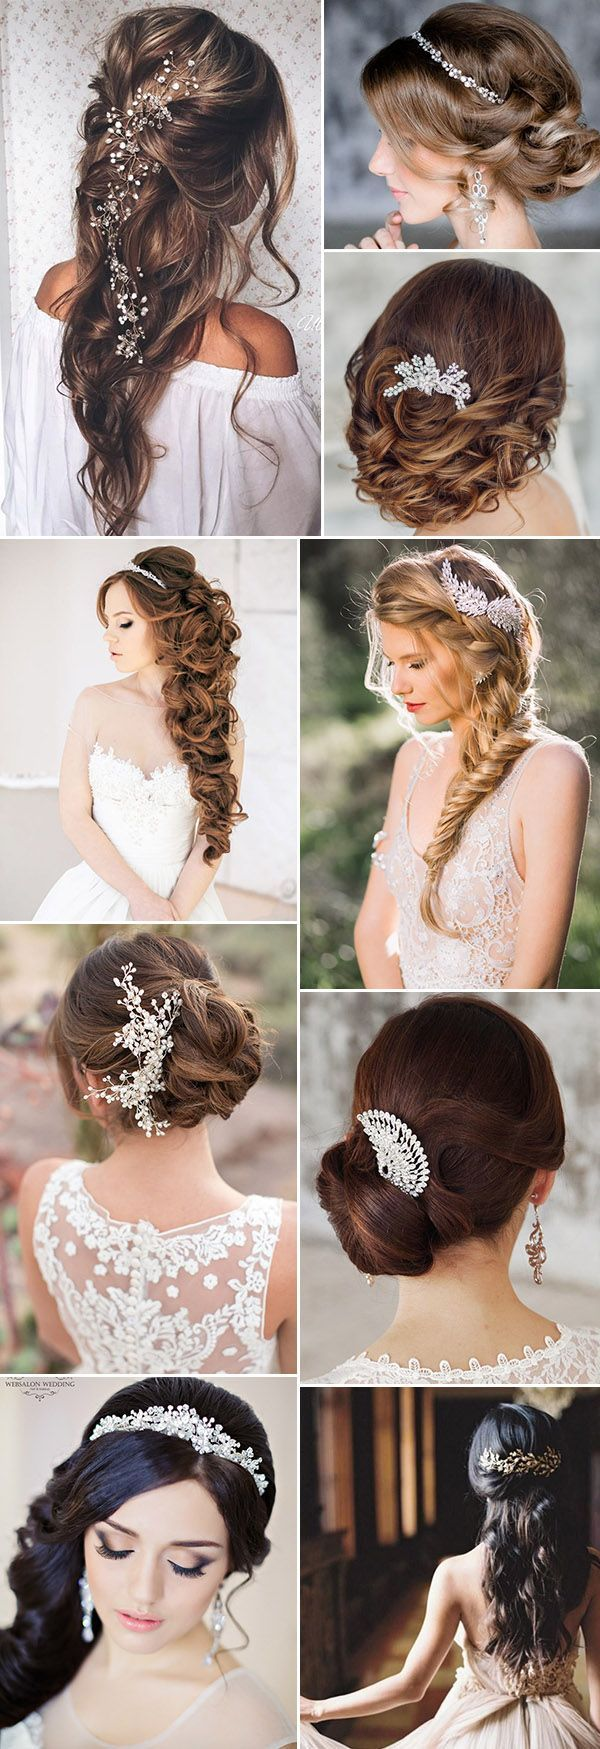 Be Bespoke Bridal Headpieces Ireland - Top 20 bridal headpieces for your wedding hairstyles